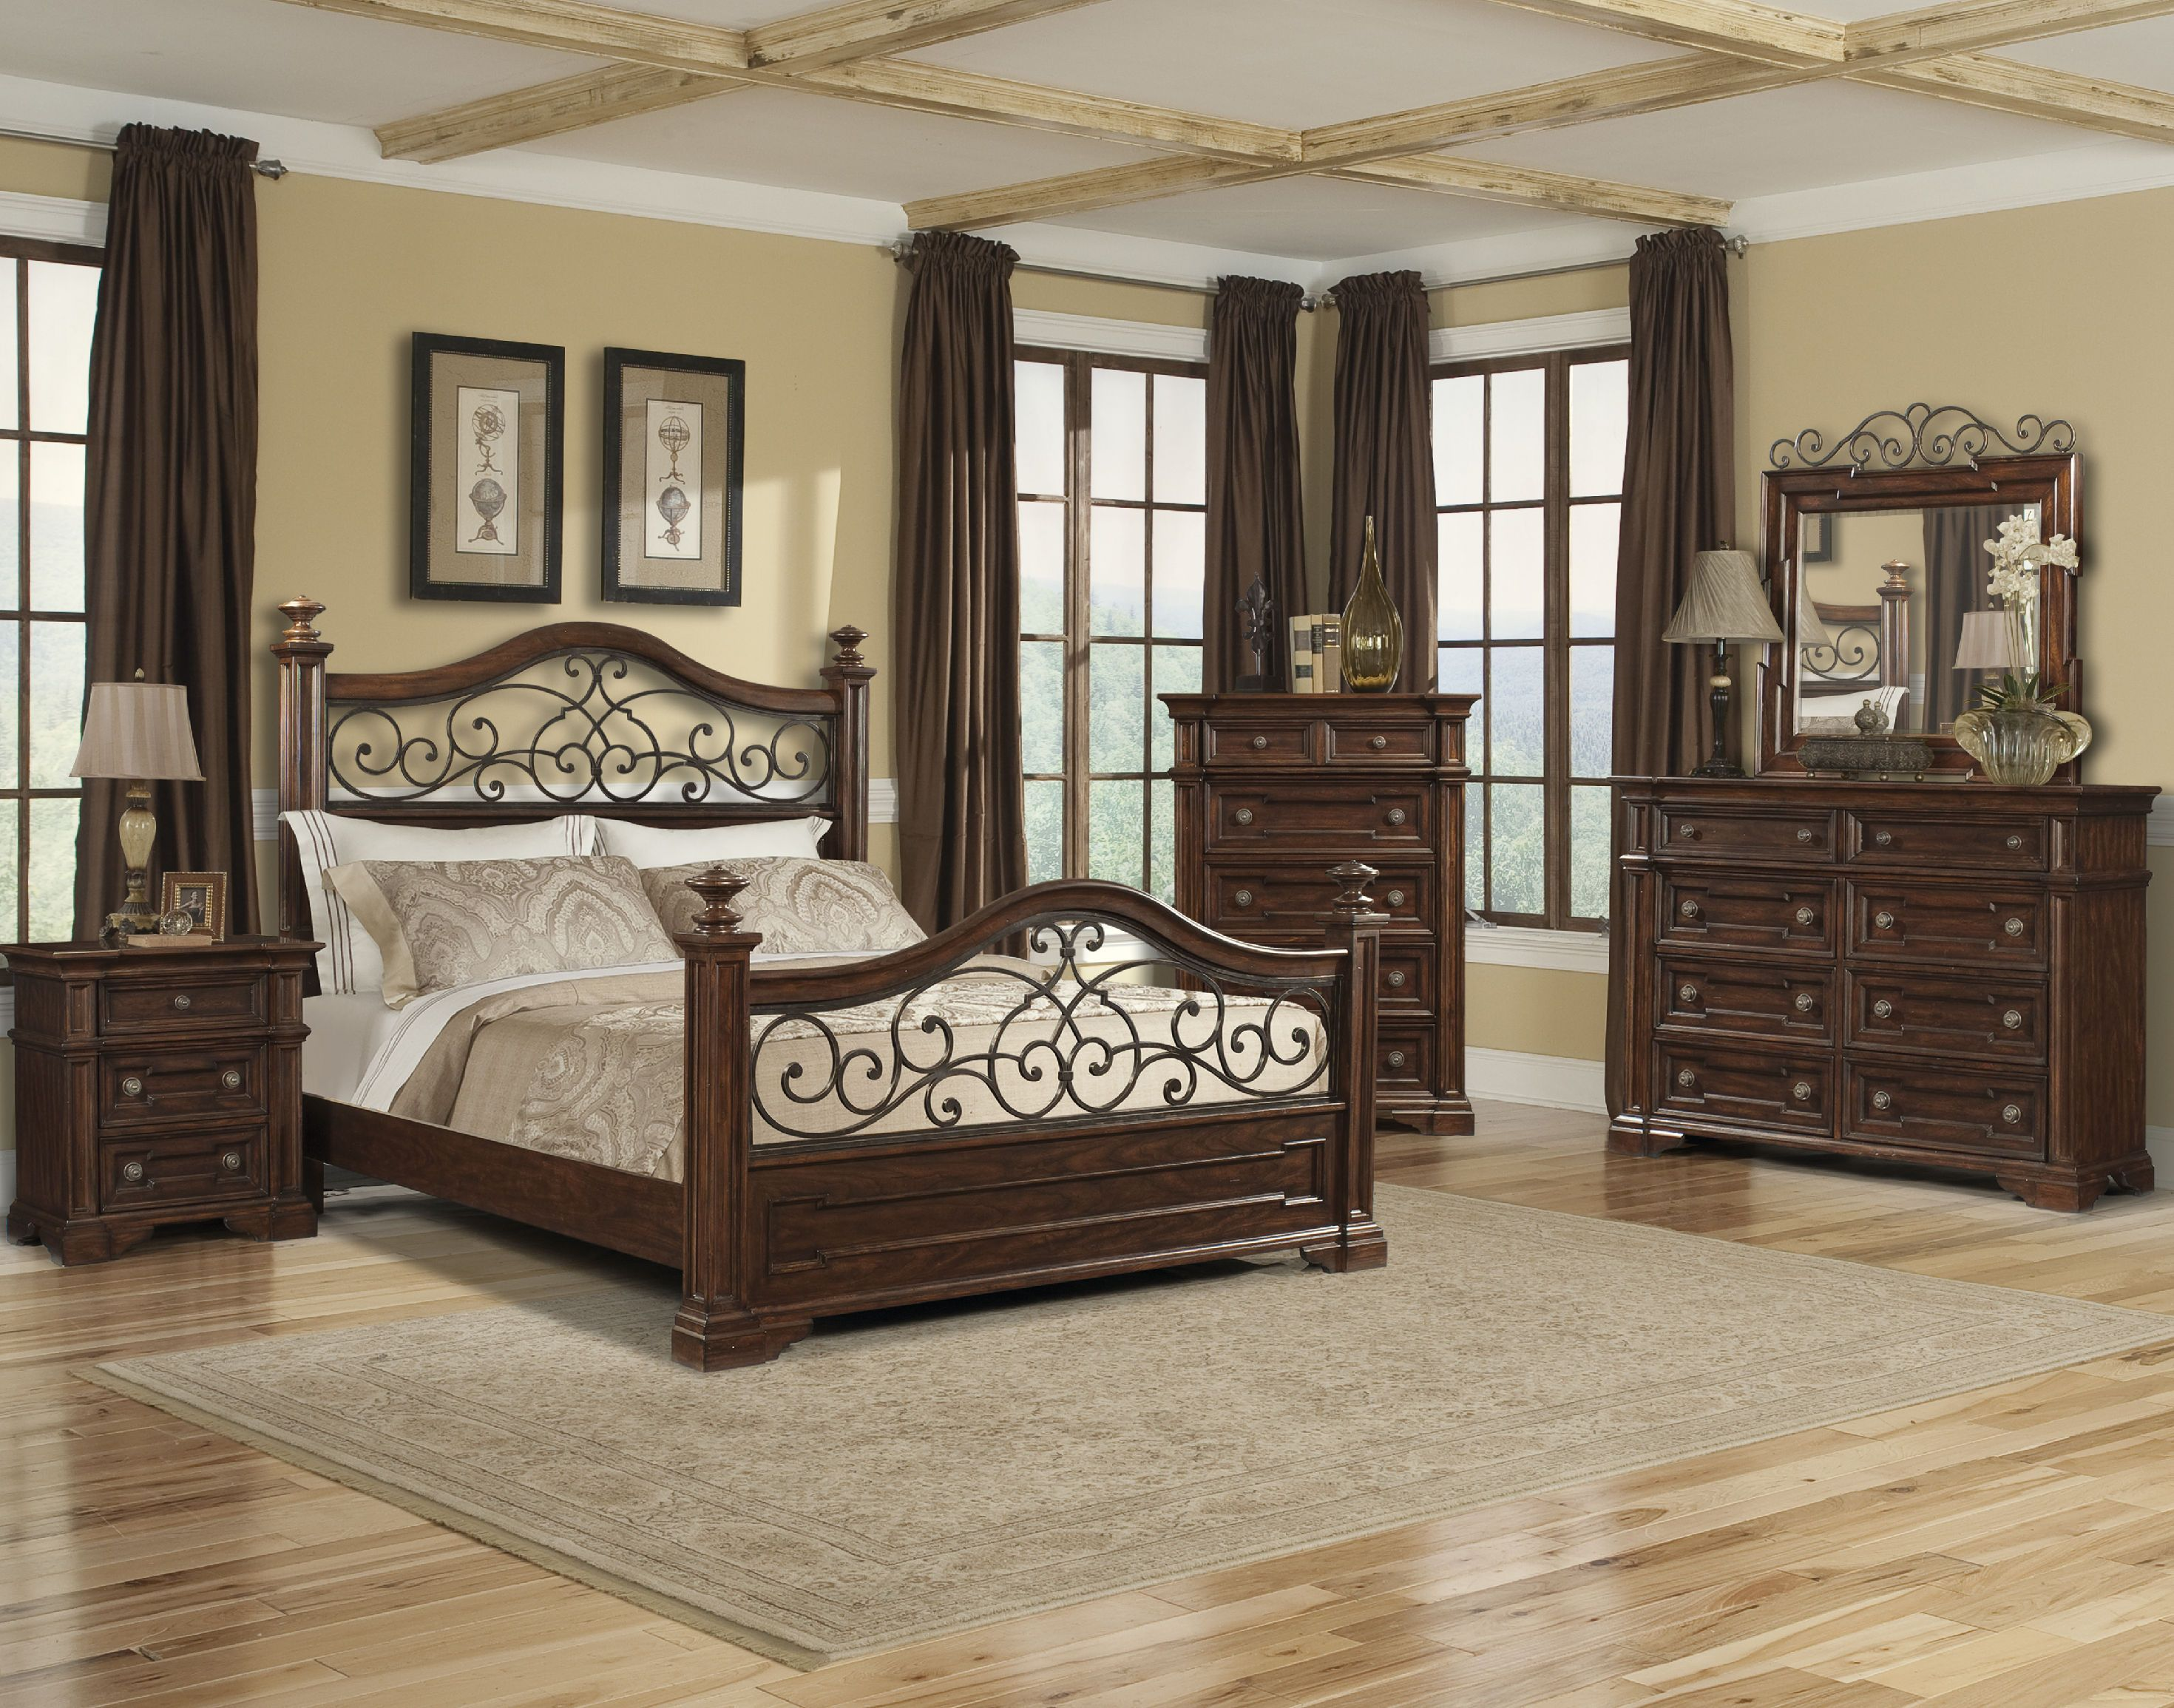 klaussner bedroom furniture klaussner bedroom furniture on 29 pins 12038